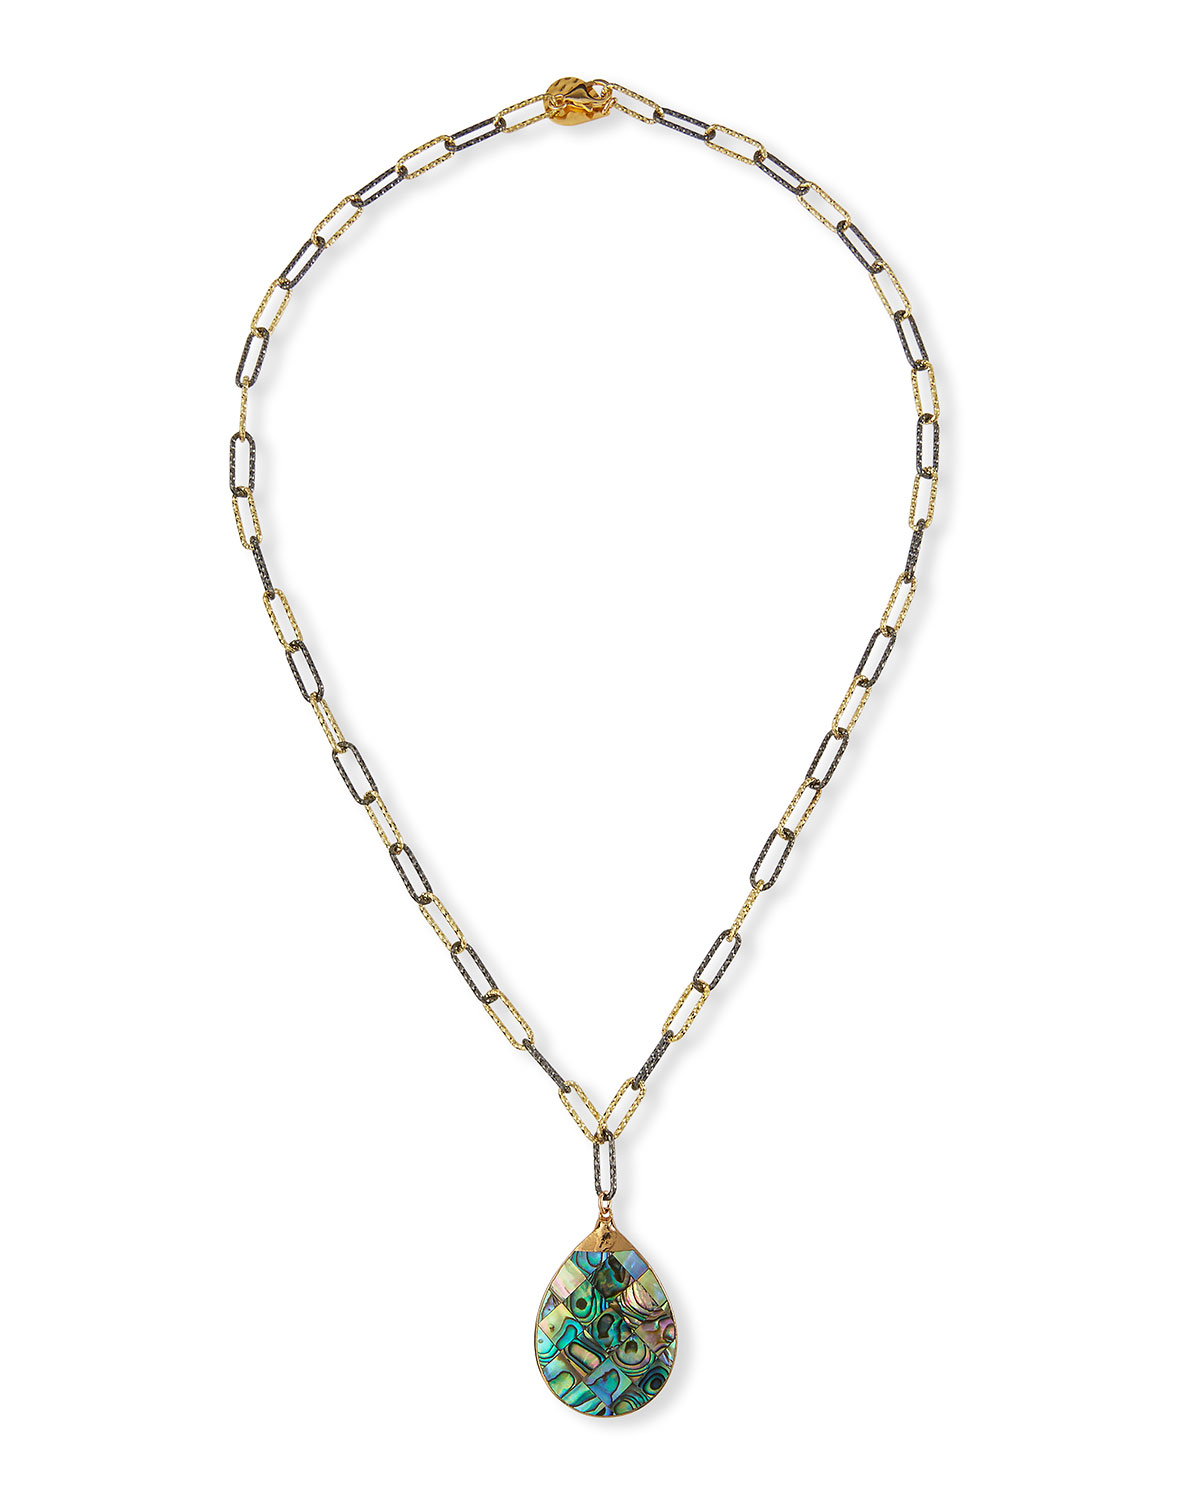 Abalone in Gold Foil Italian Two-Tone Chain Necklace